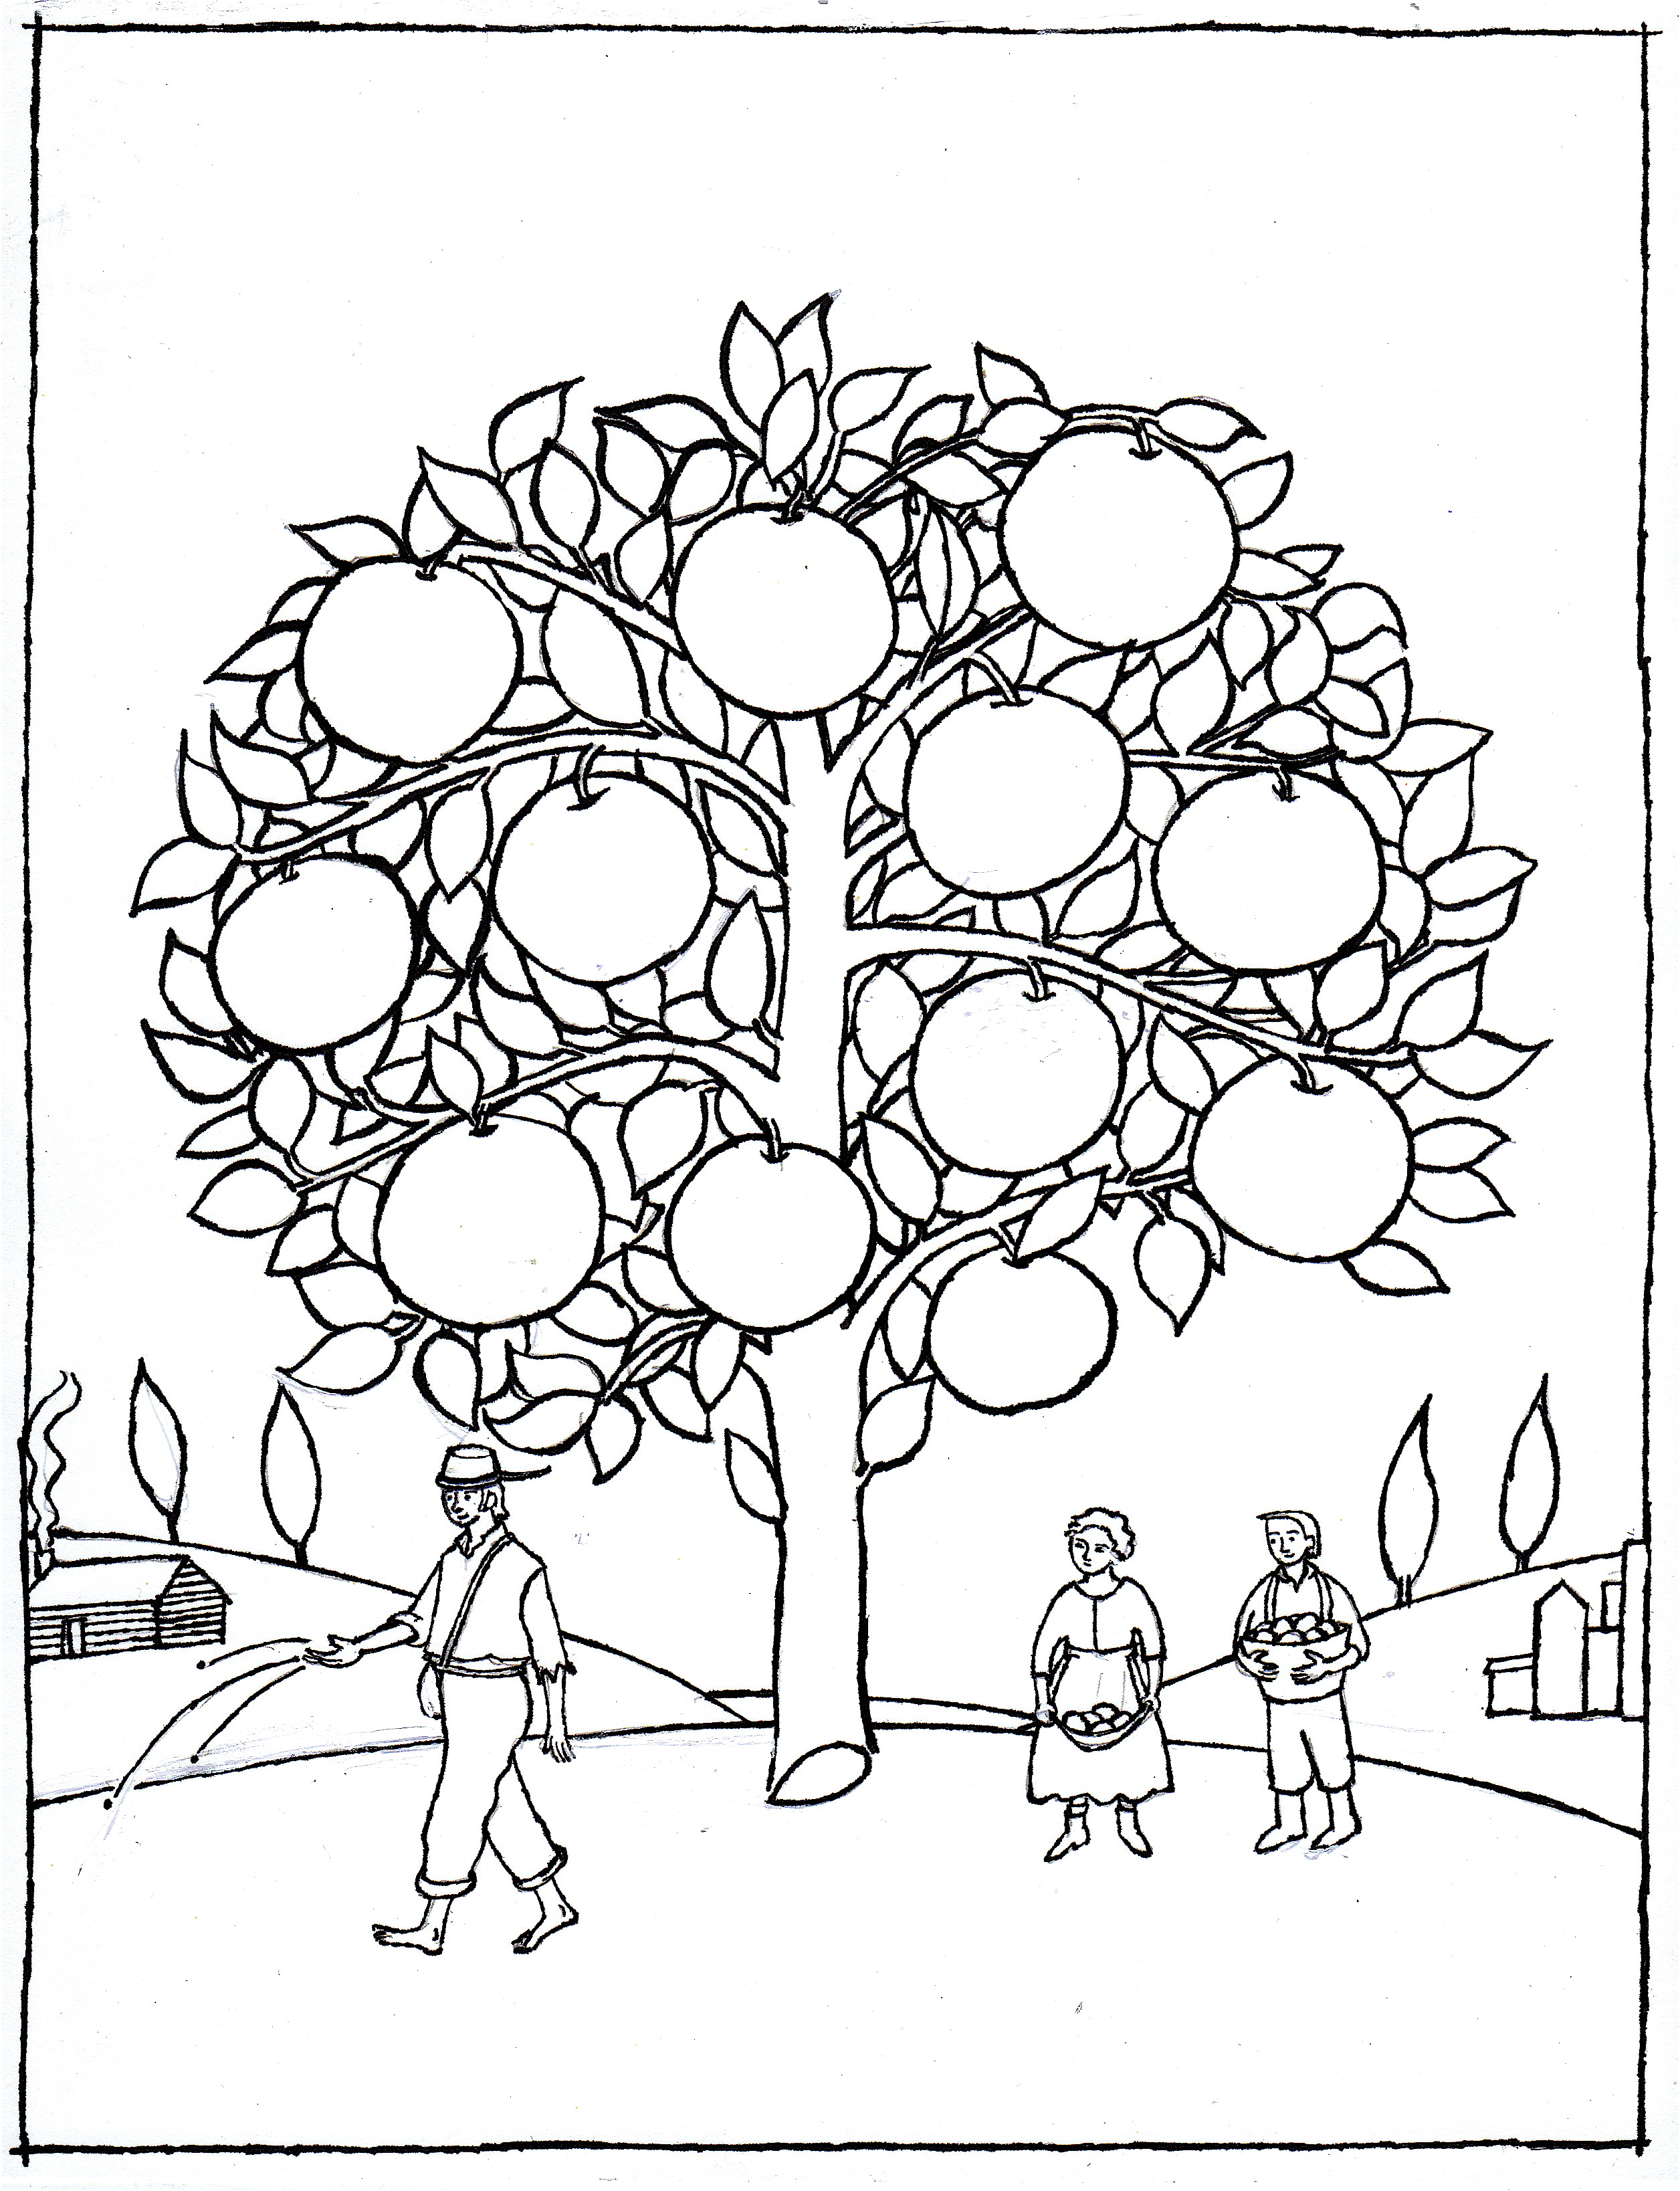 Johnny Appleseed coloring page  Lynne Rae Perkins